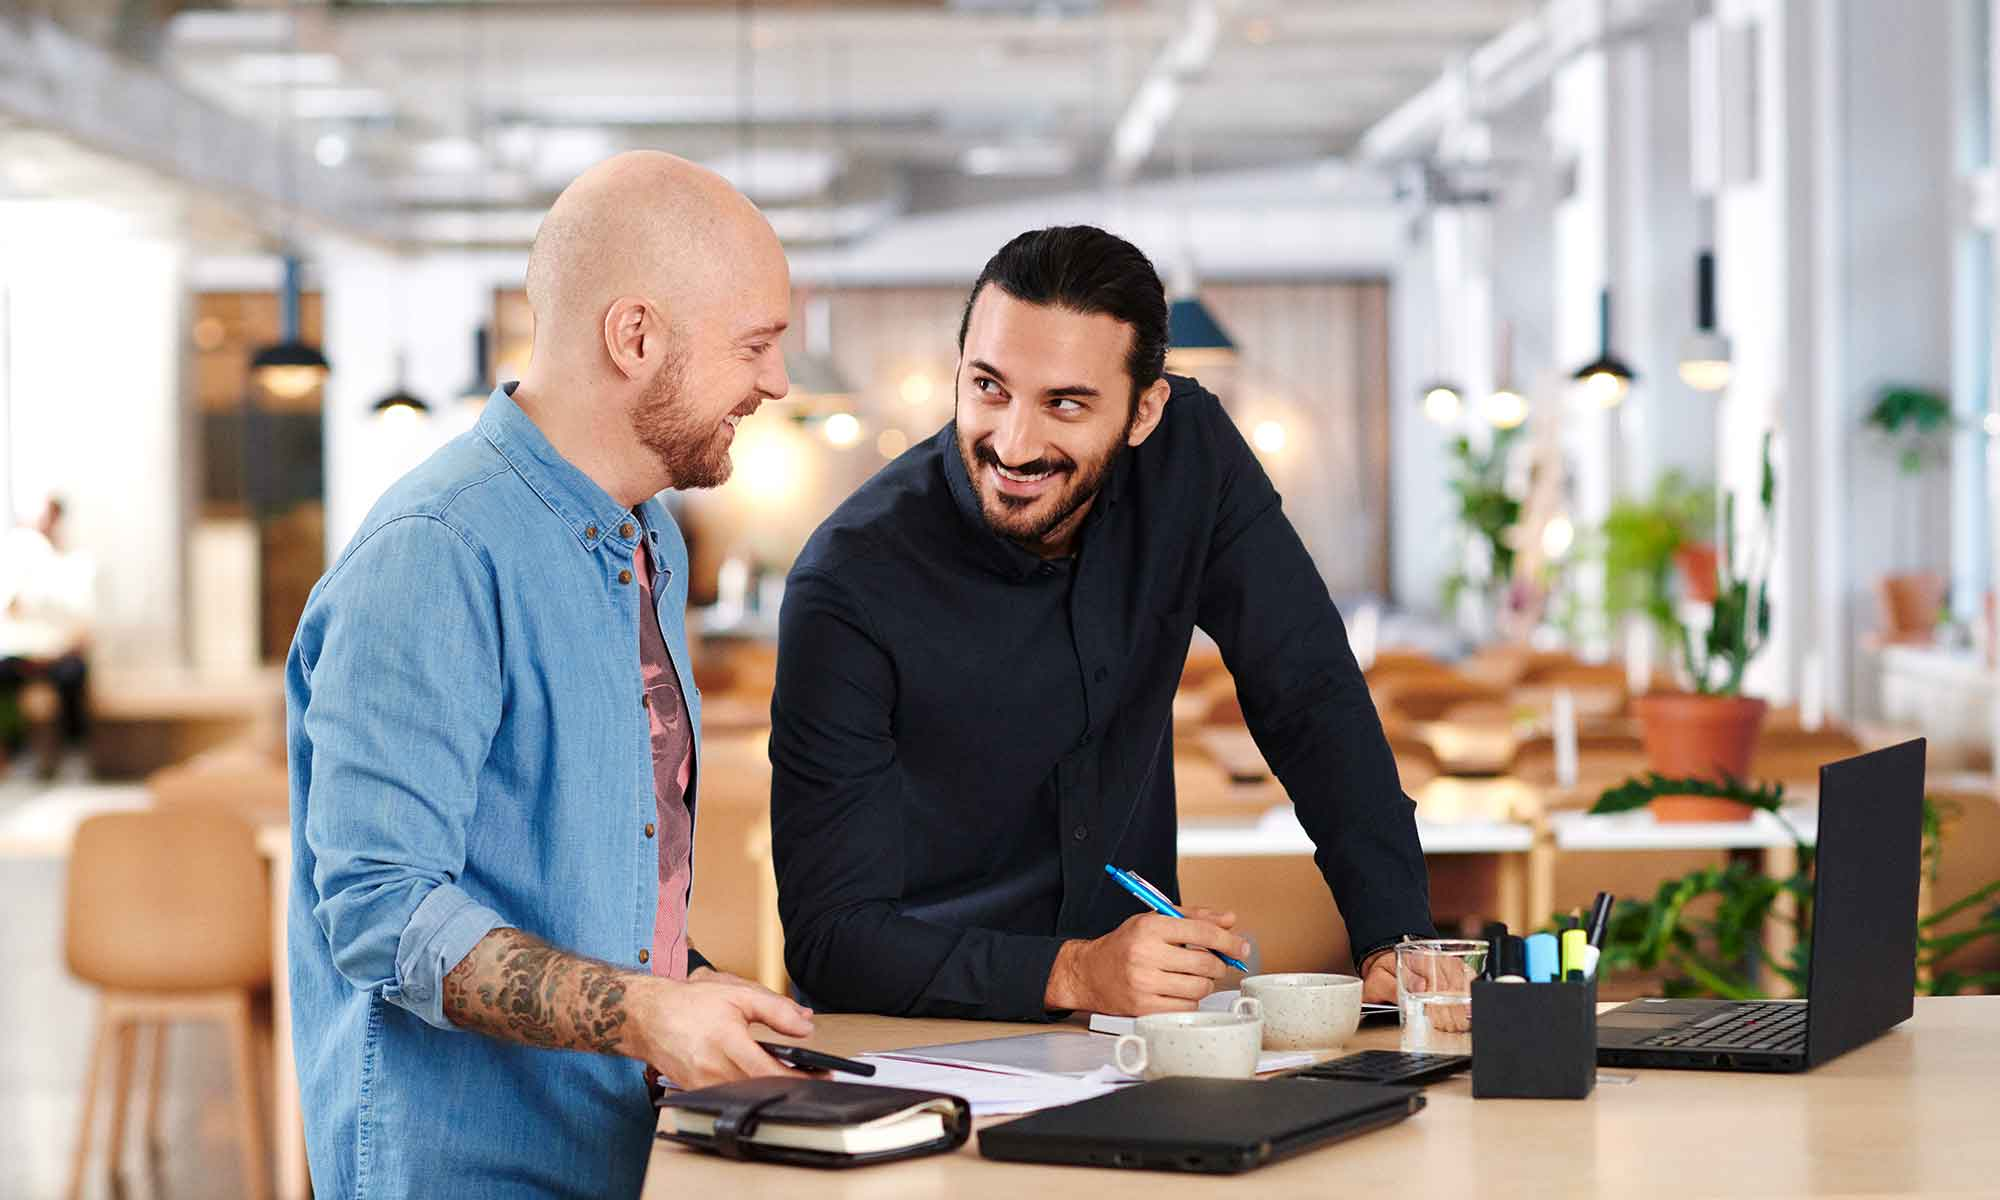 Two men at a workplace smiling at each other